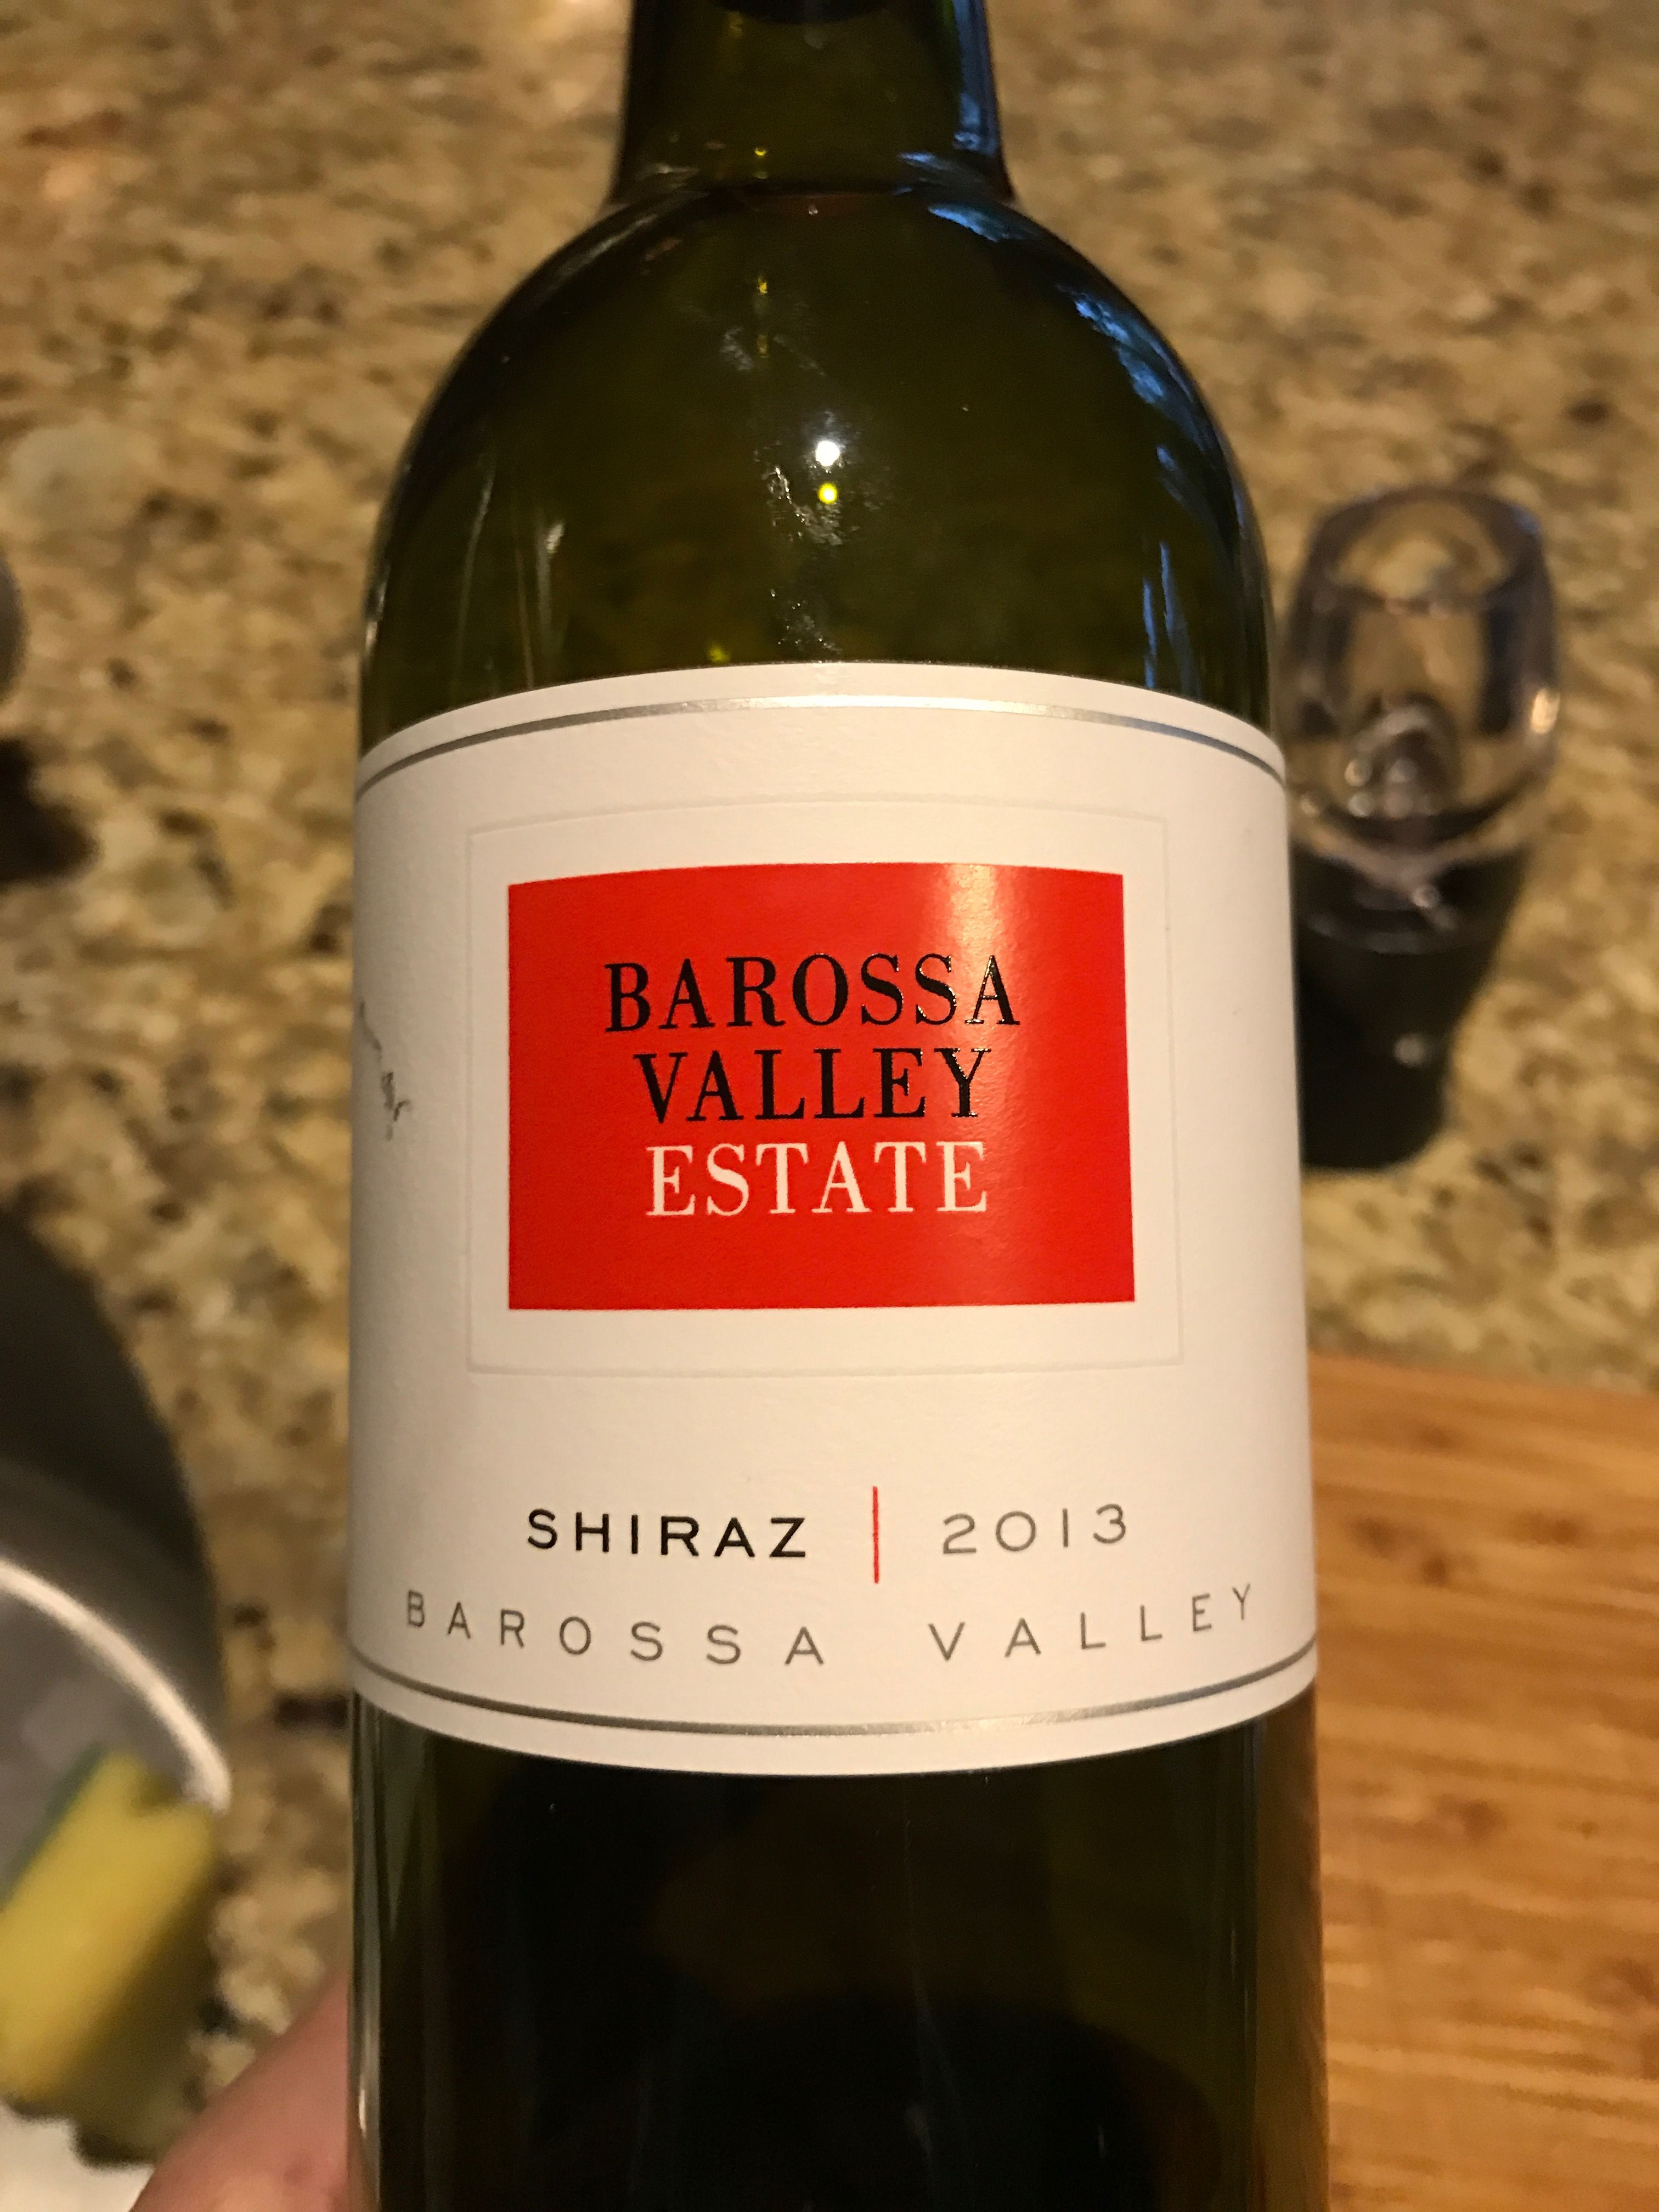 Enjoyed This Barossa Valley Estate Shiraz At Home New Year S Eve 2016 16 From Kroger Favorite Wine Wine Bottle New Years Eve 2016